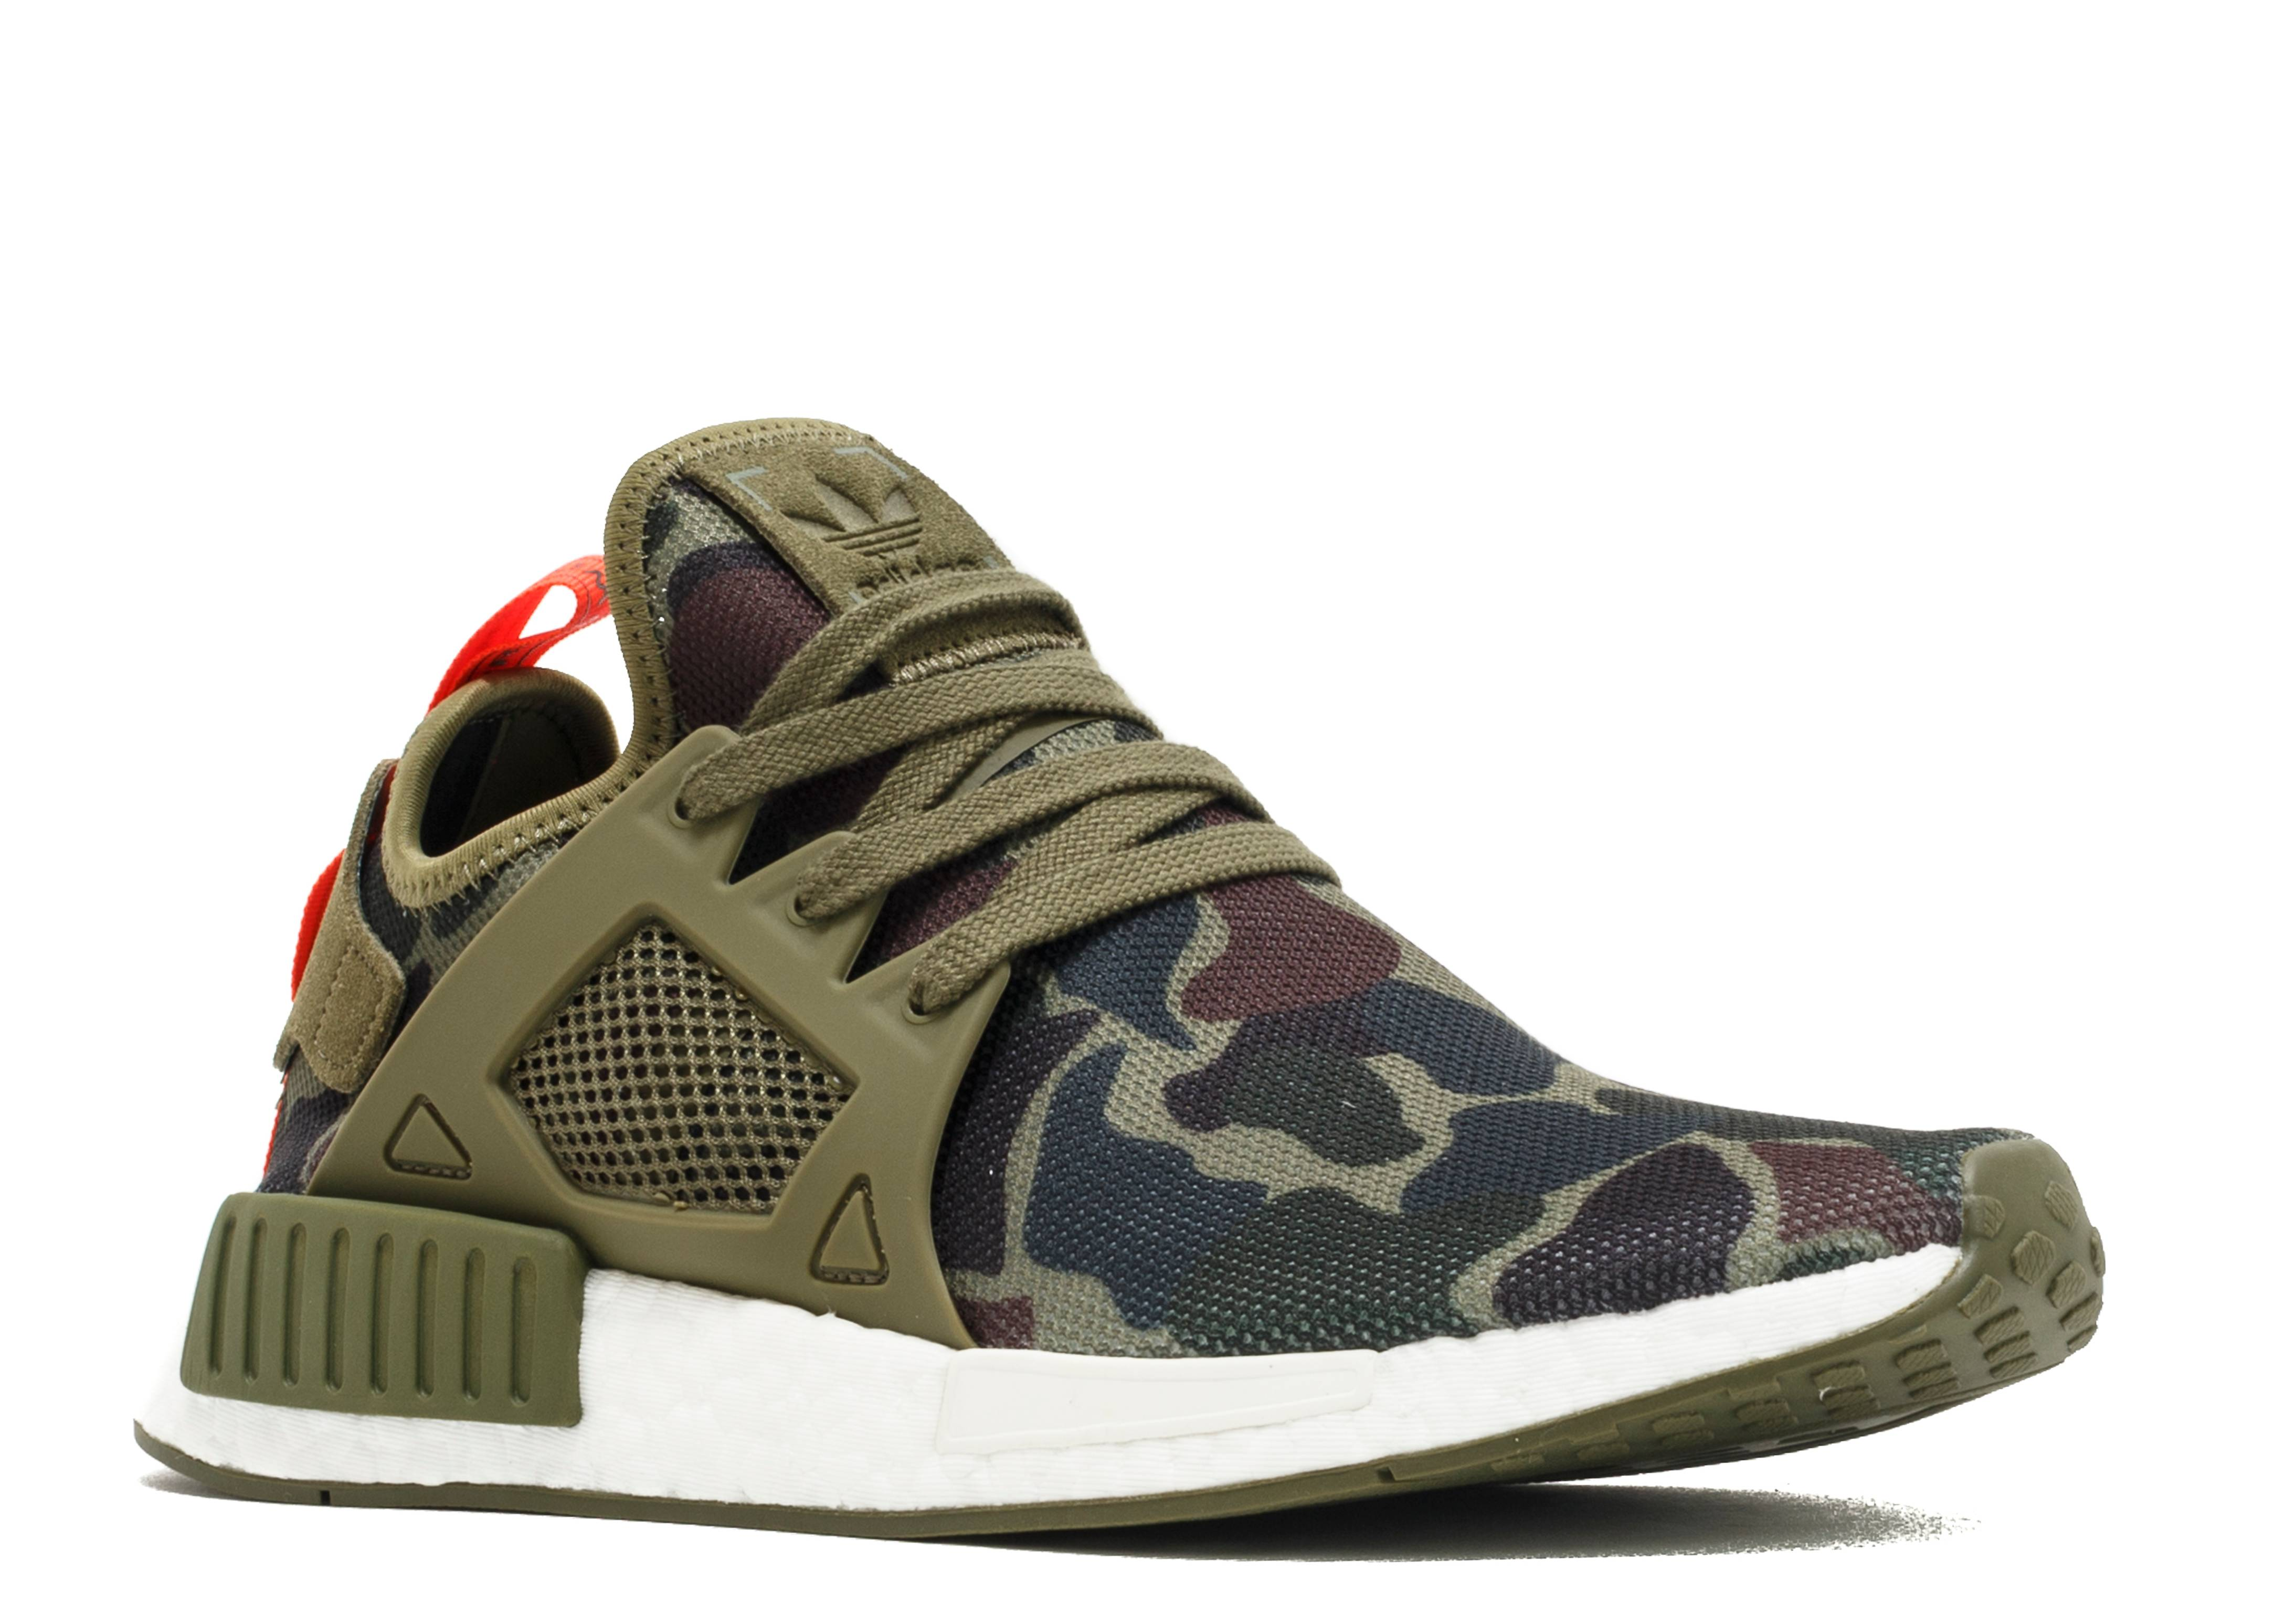 More Cheap Adidas NMD XR 1 colorways with the NMD R2 style upper is